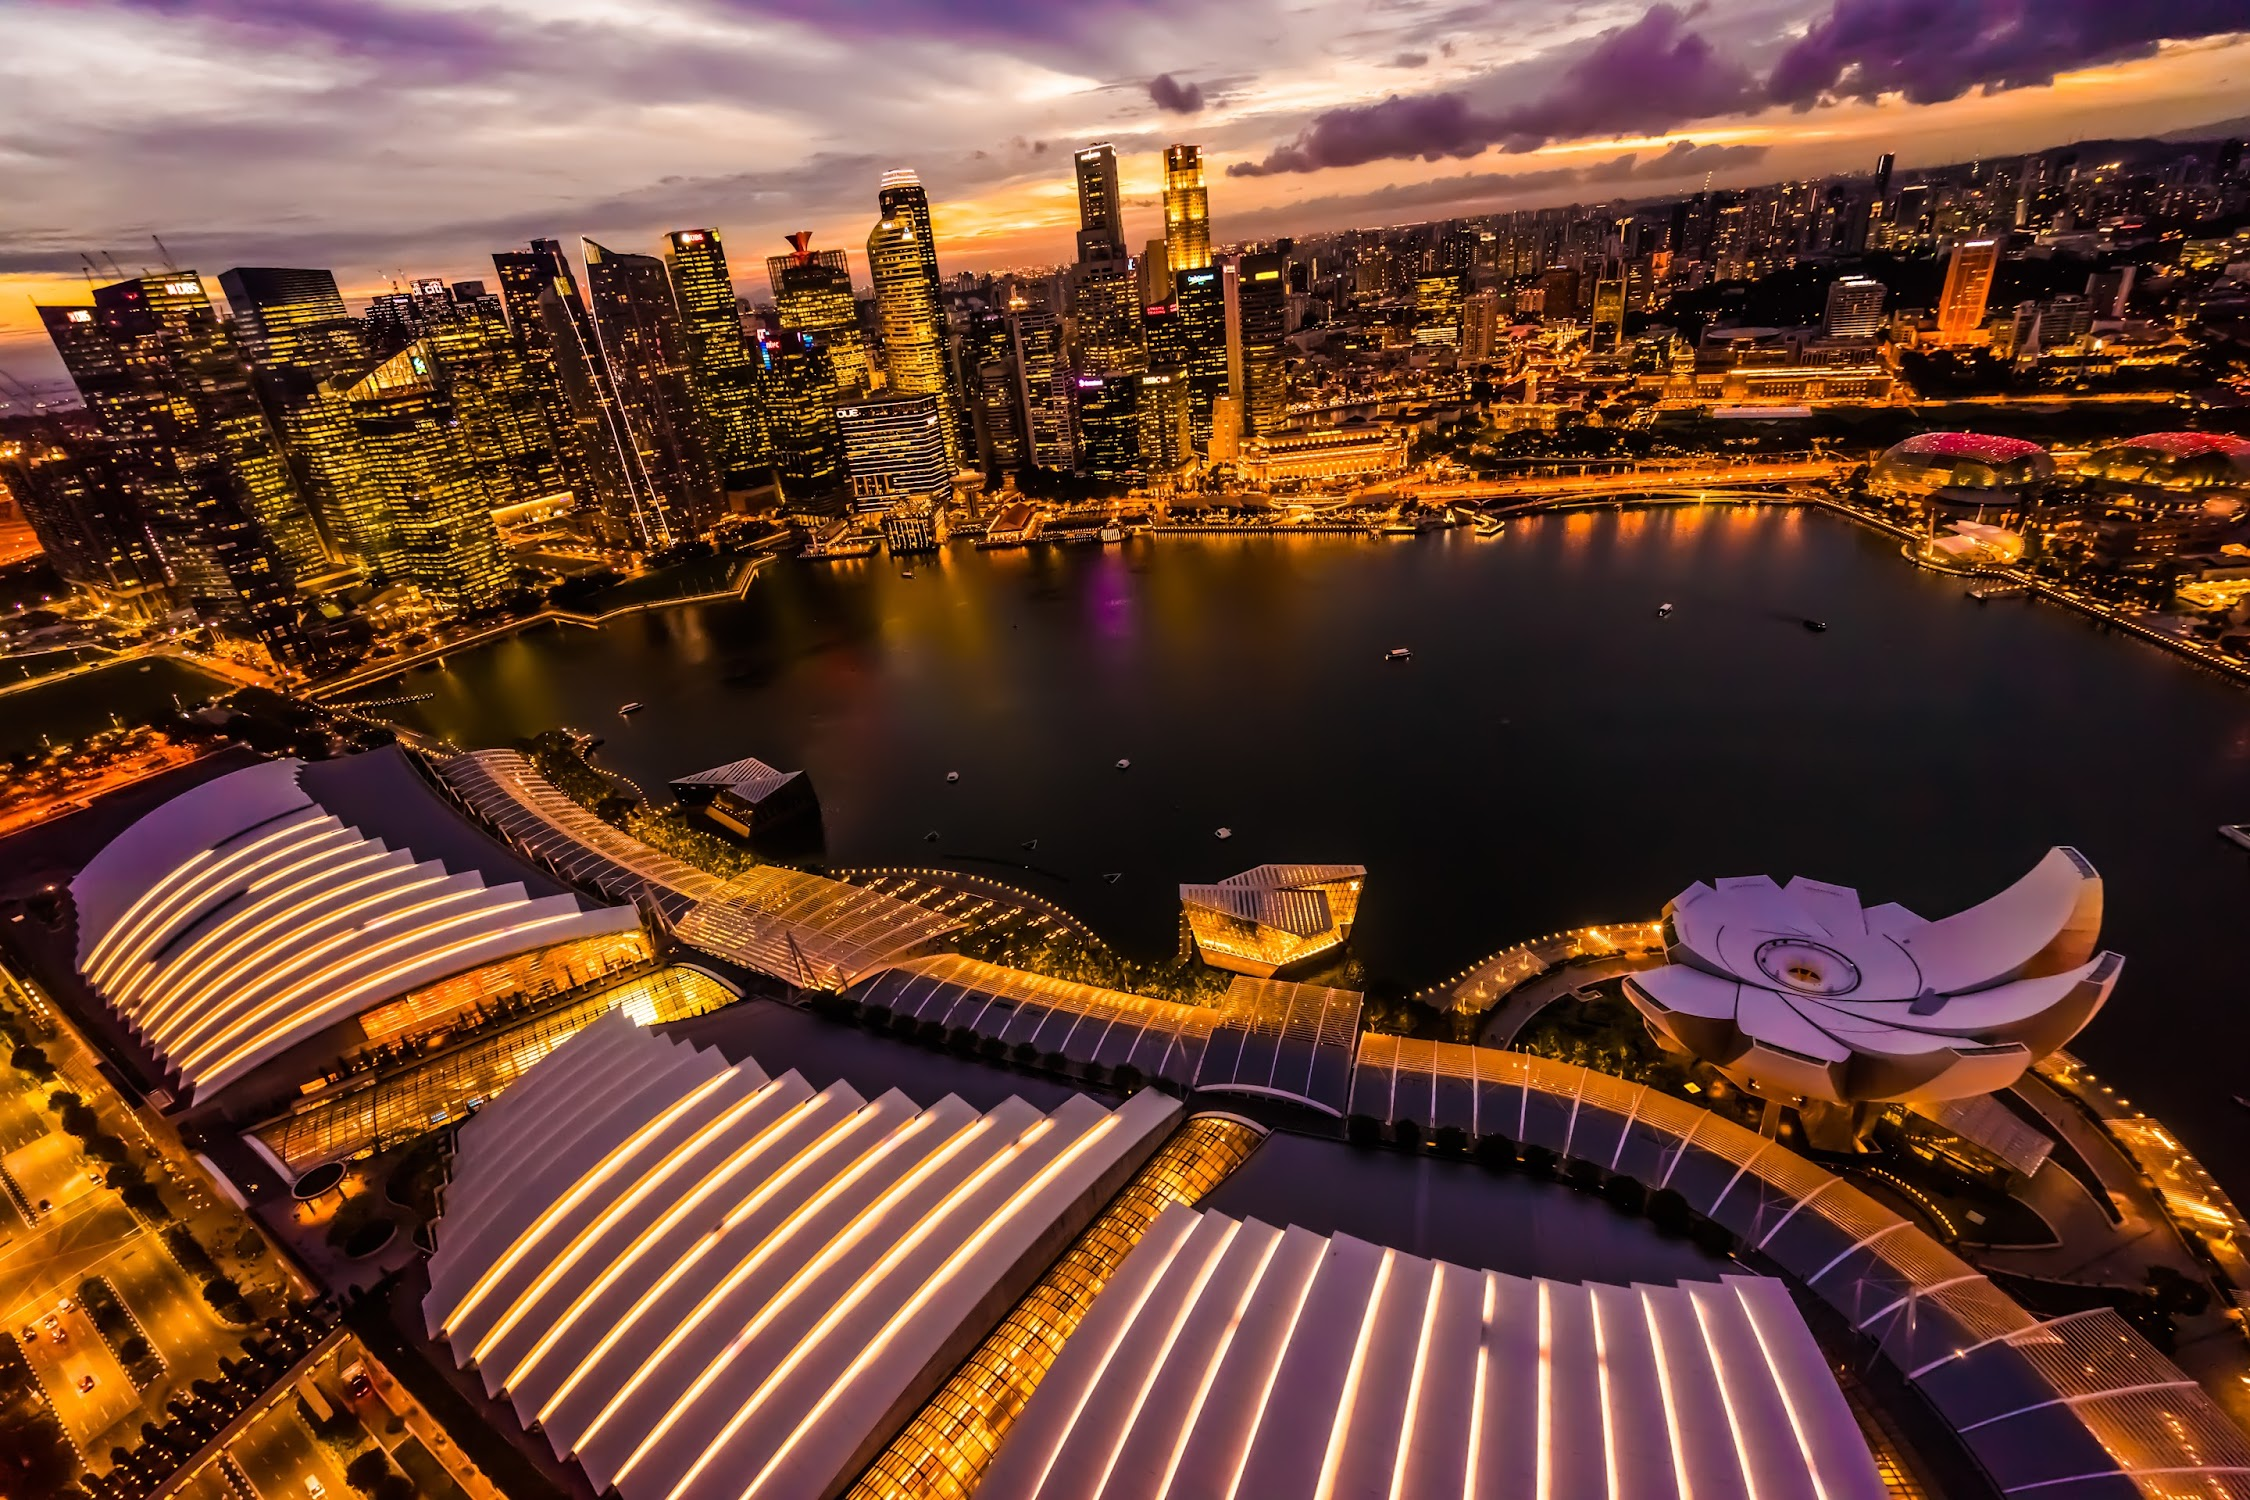 Singapore Marina bay Sands SkyPark Observation Deck night view2